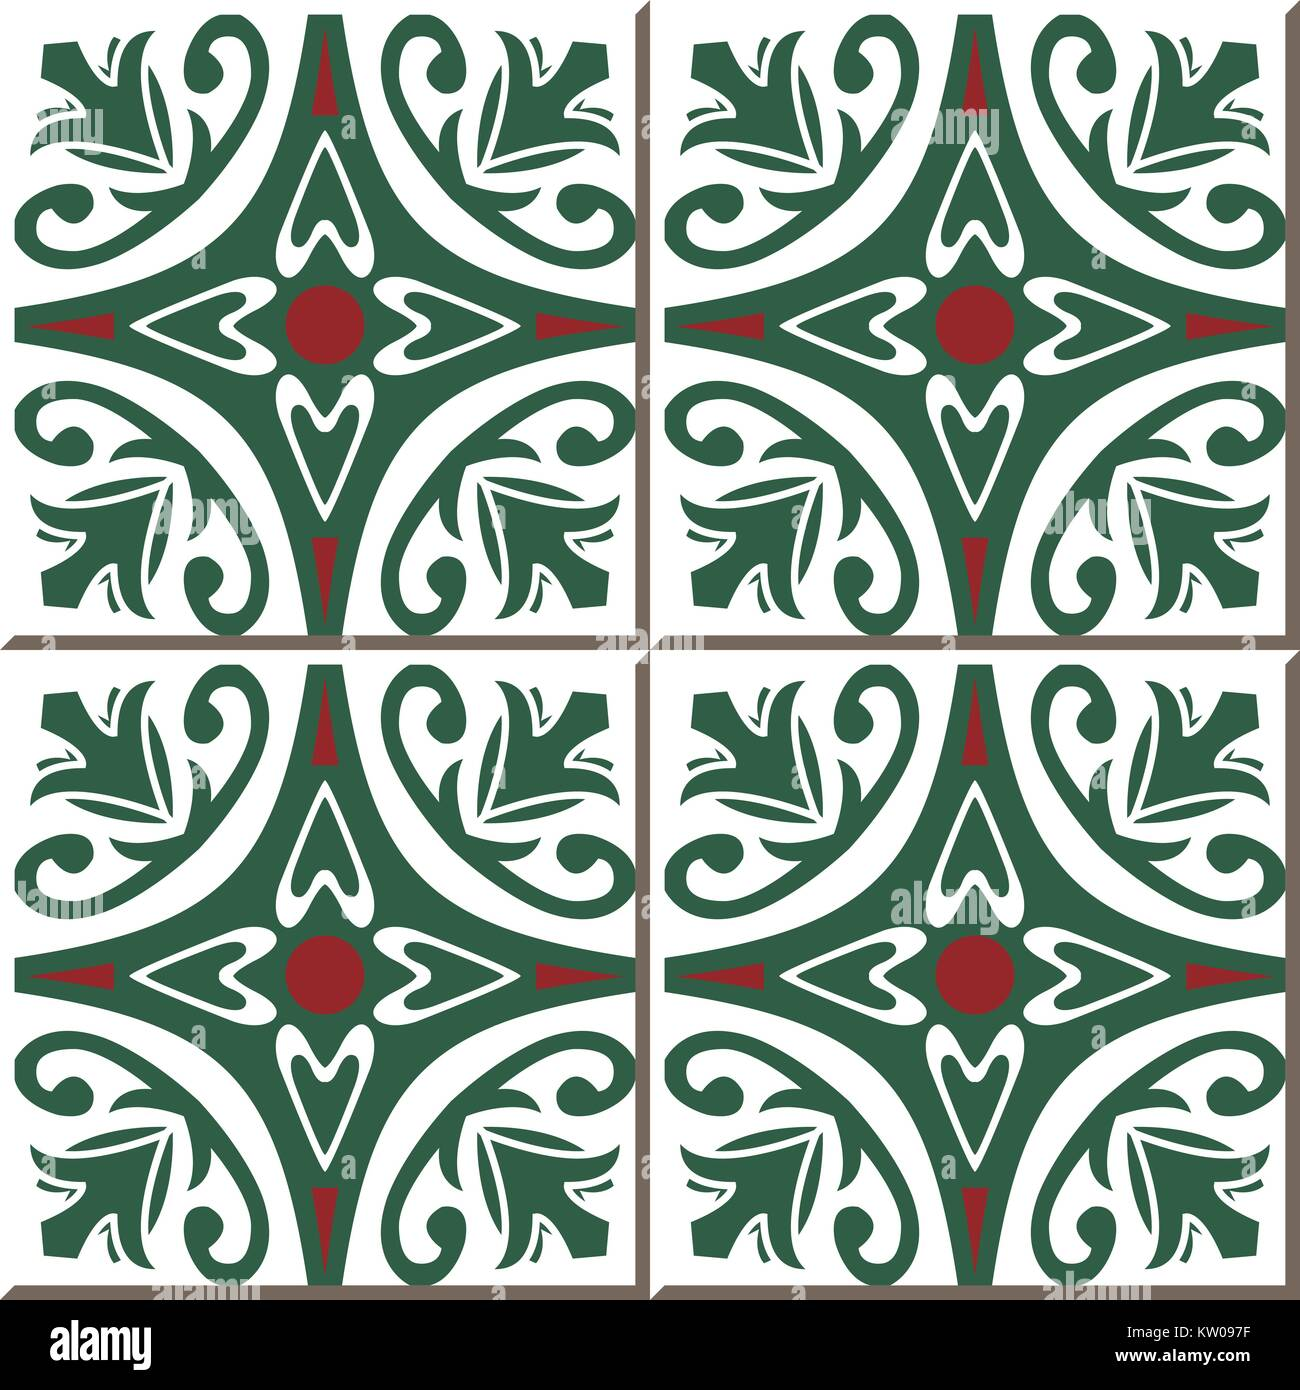 Ceramic Tile Pattern Of Garden Round Red Flower Green Vine Stock Vector Image Art Alamy